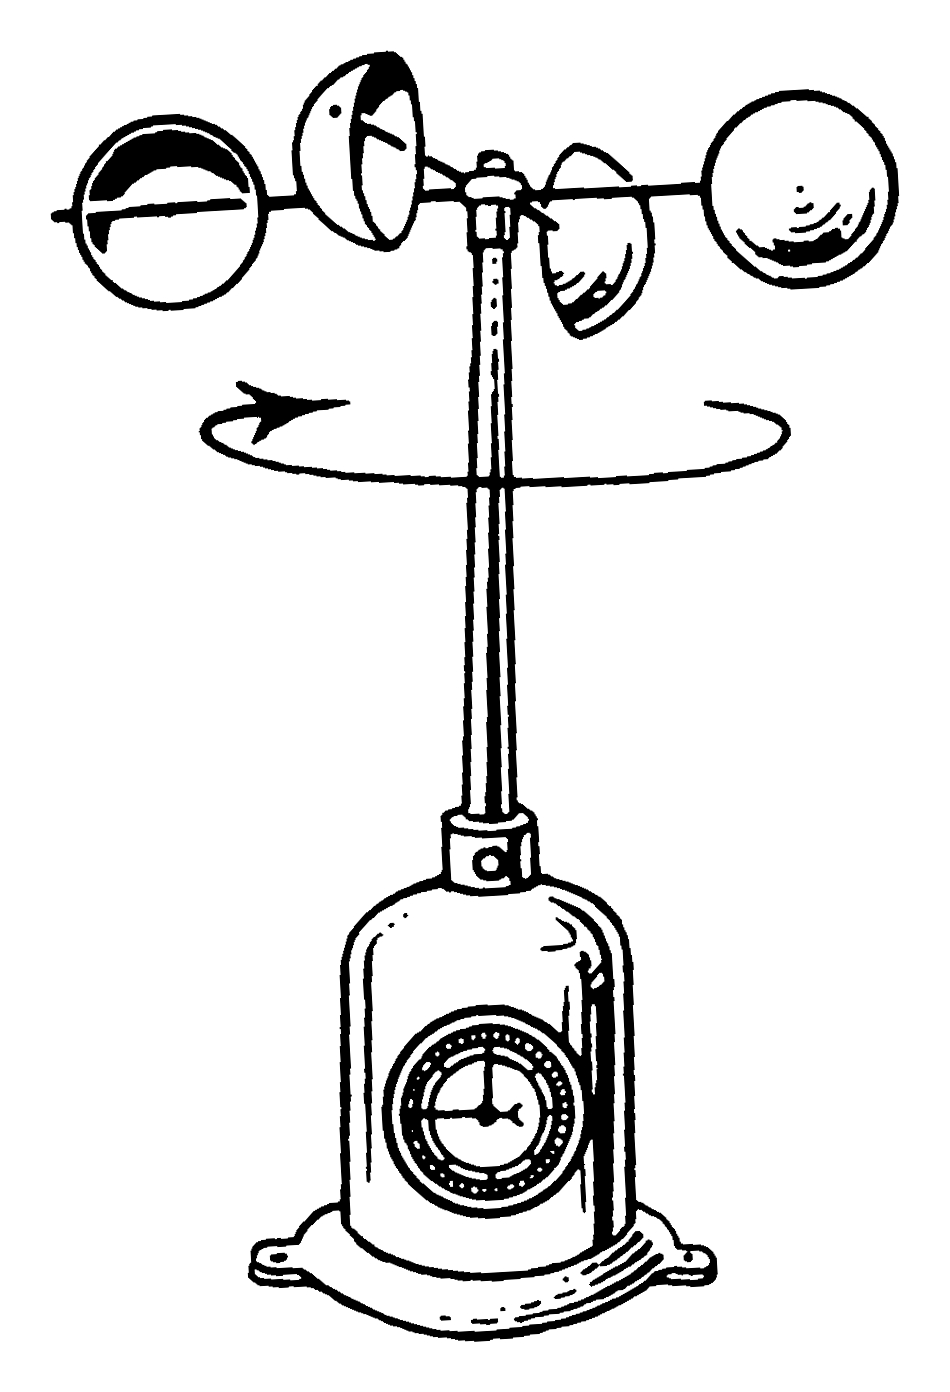 medium resolution of anemometer labeled diagram file anemometer 002 png the work of god s children anemometer labeled diagram